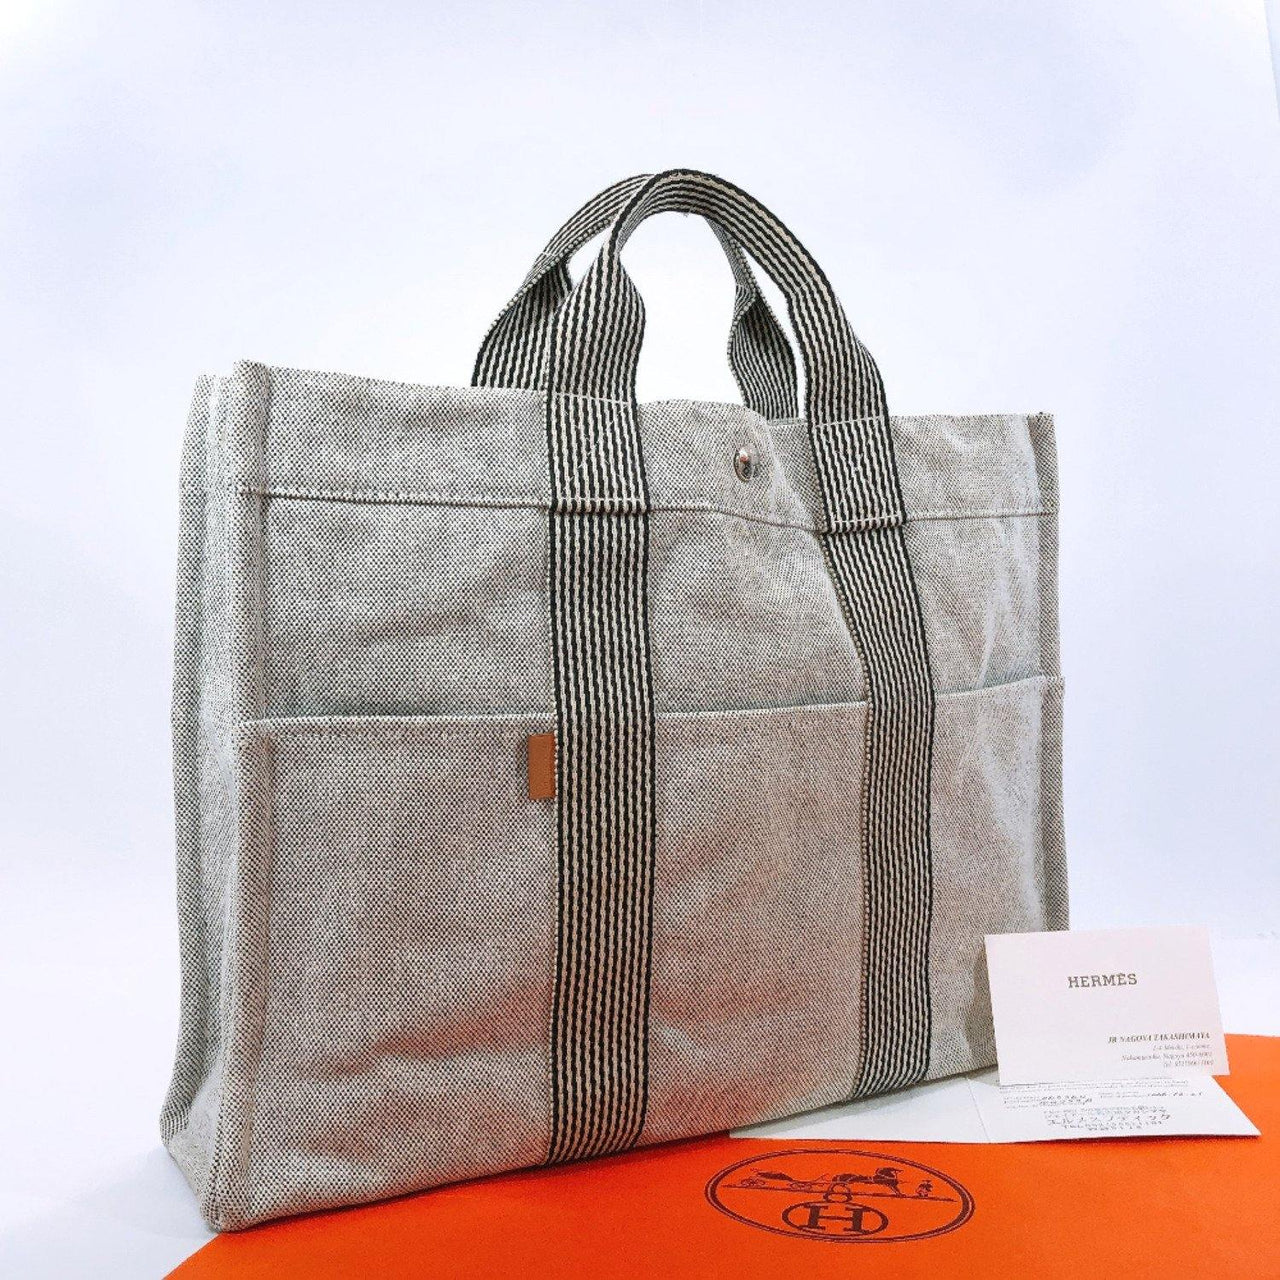 HERMES Tote Bag New fool toe MM canvas gray SilverHardware Women Used - JP-BRANDS.com